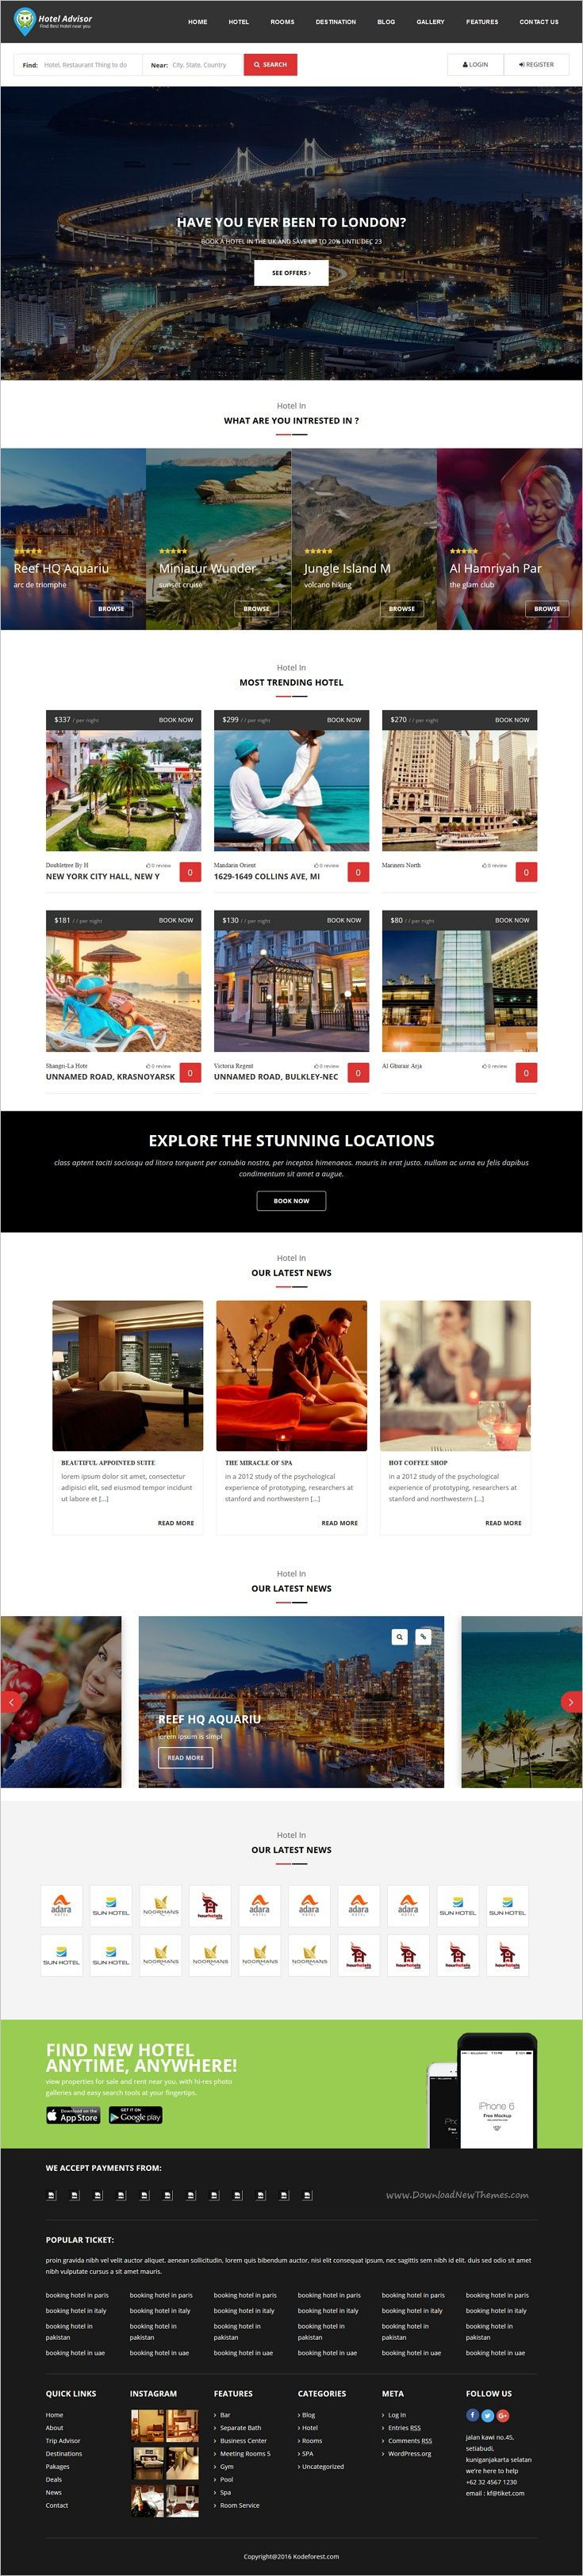 Hotel Advisor is a clean and modern design 6 in 1 #WordPress theme to manage #hotels, hostels, #resorts, rooms reservation with in depth review and booking management system website download now➩  https://themeforest.net/item/hotel-advisor-hotel-management-and-booking-wordpress-theme/18435488?ref=Datasata